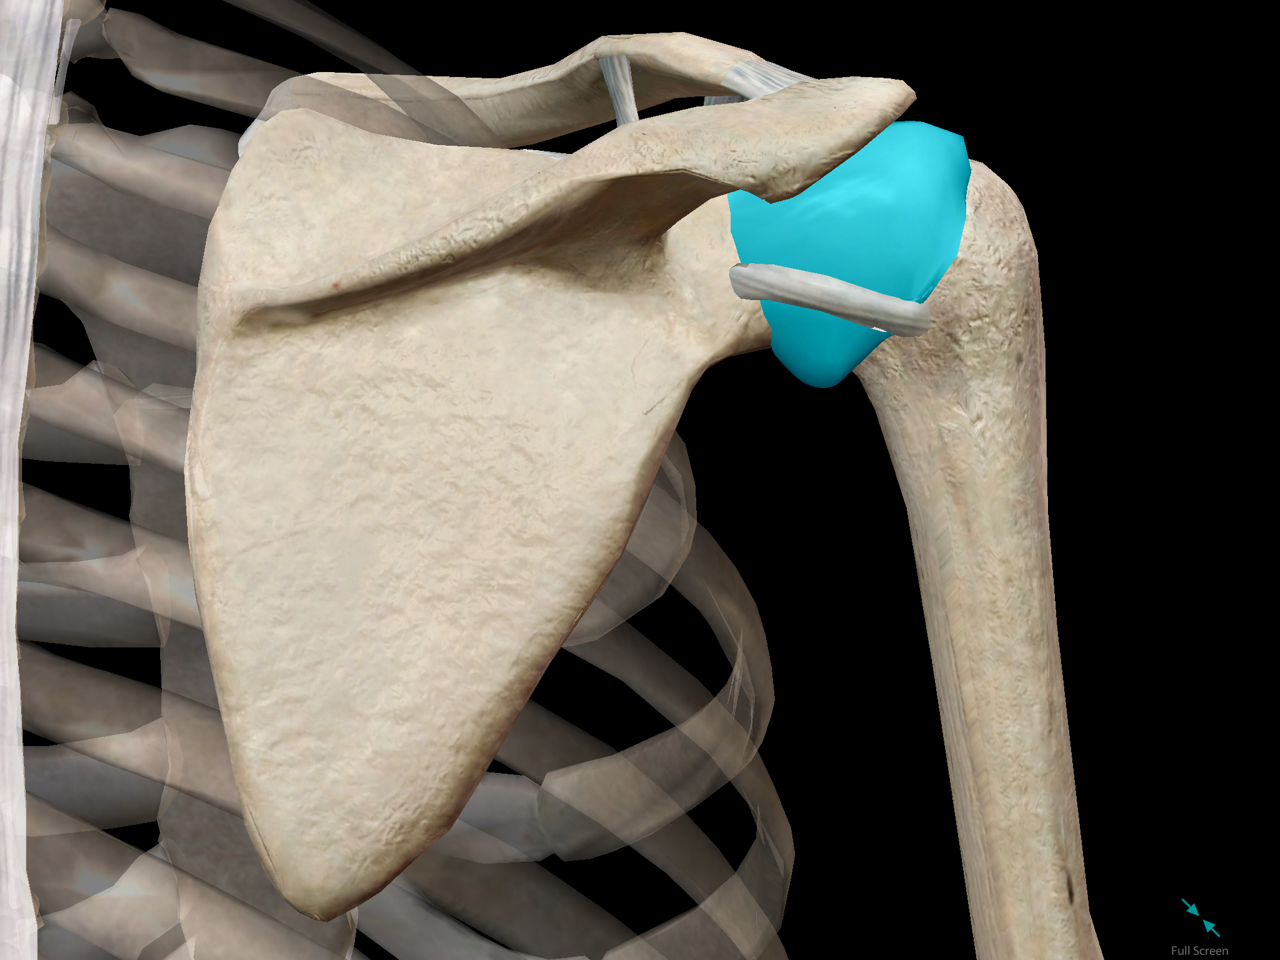 shoulder-girdle-glenoid-cavity-joint.png